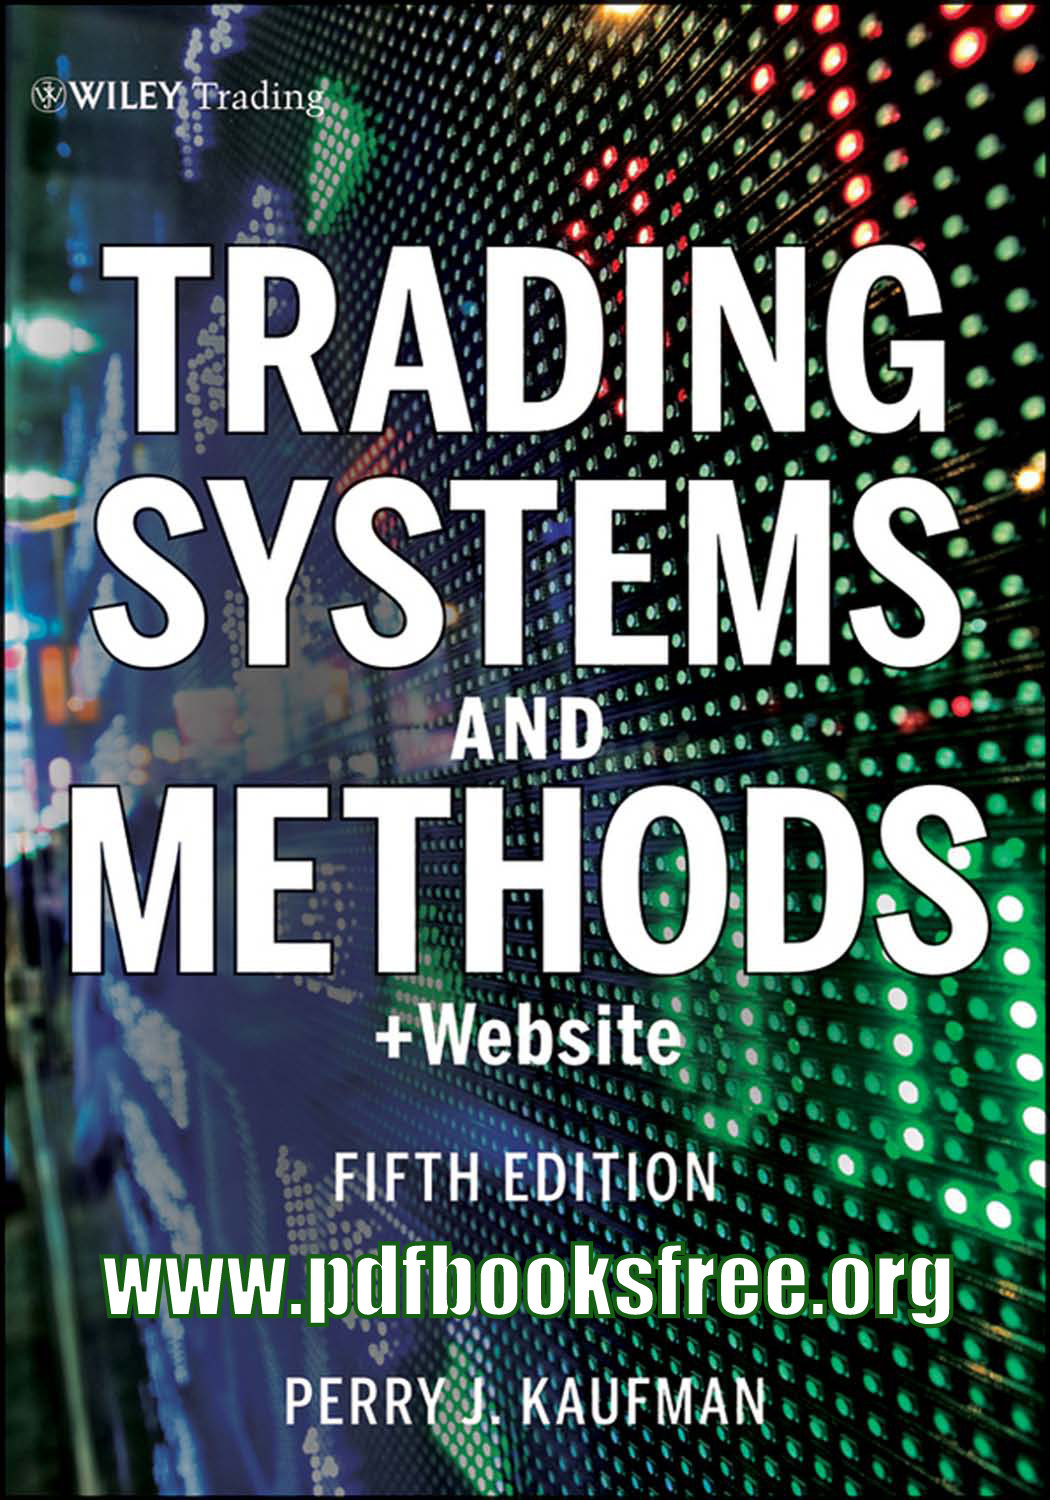 Trading Systems And Methods Website Fifth Edition Free Pdf Books